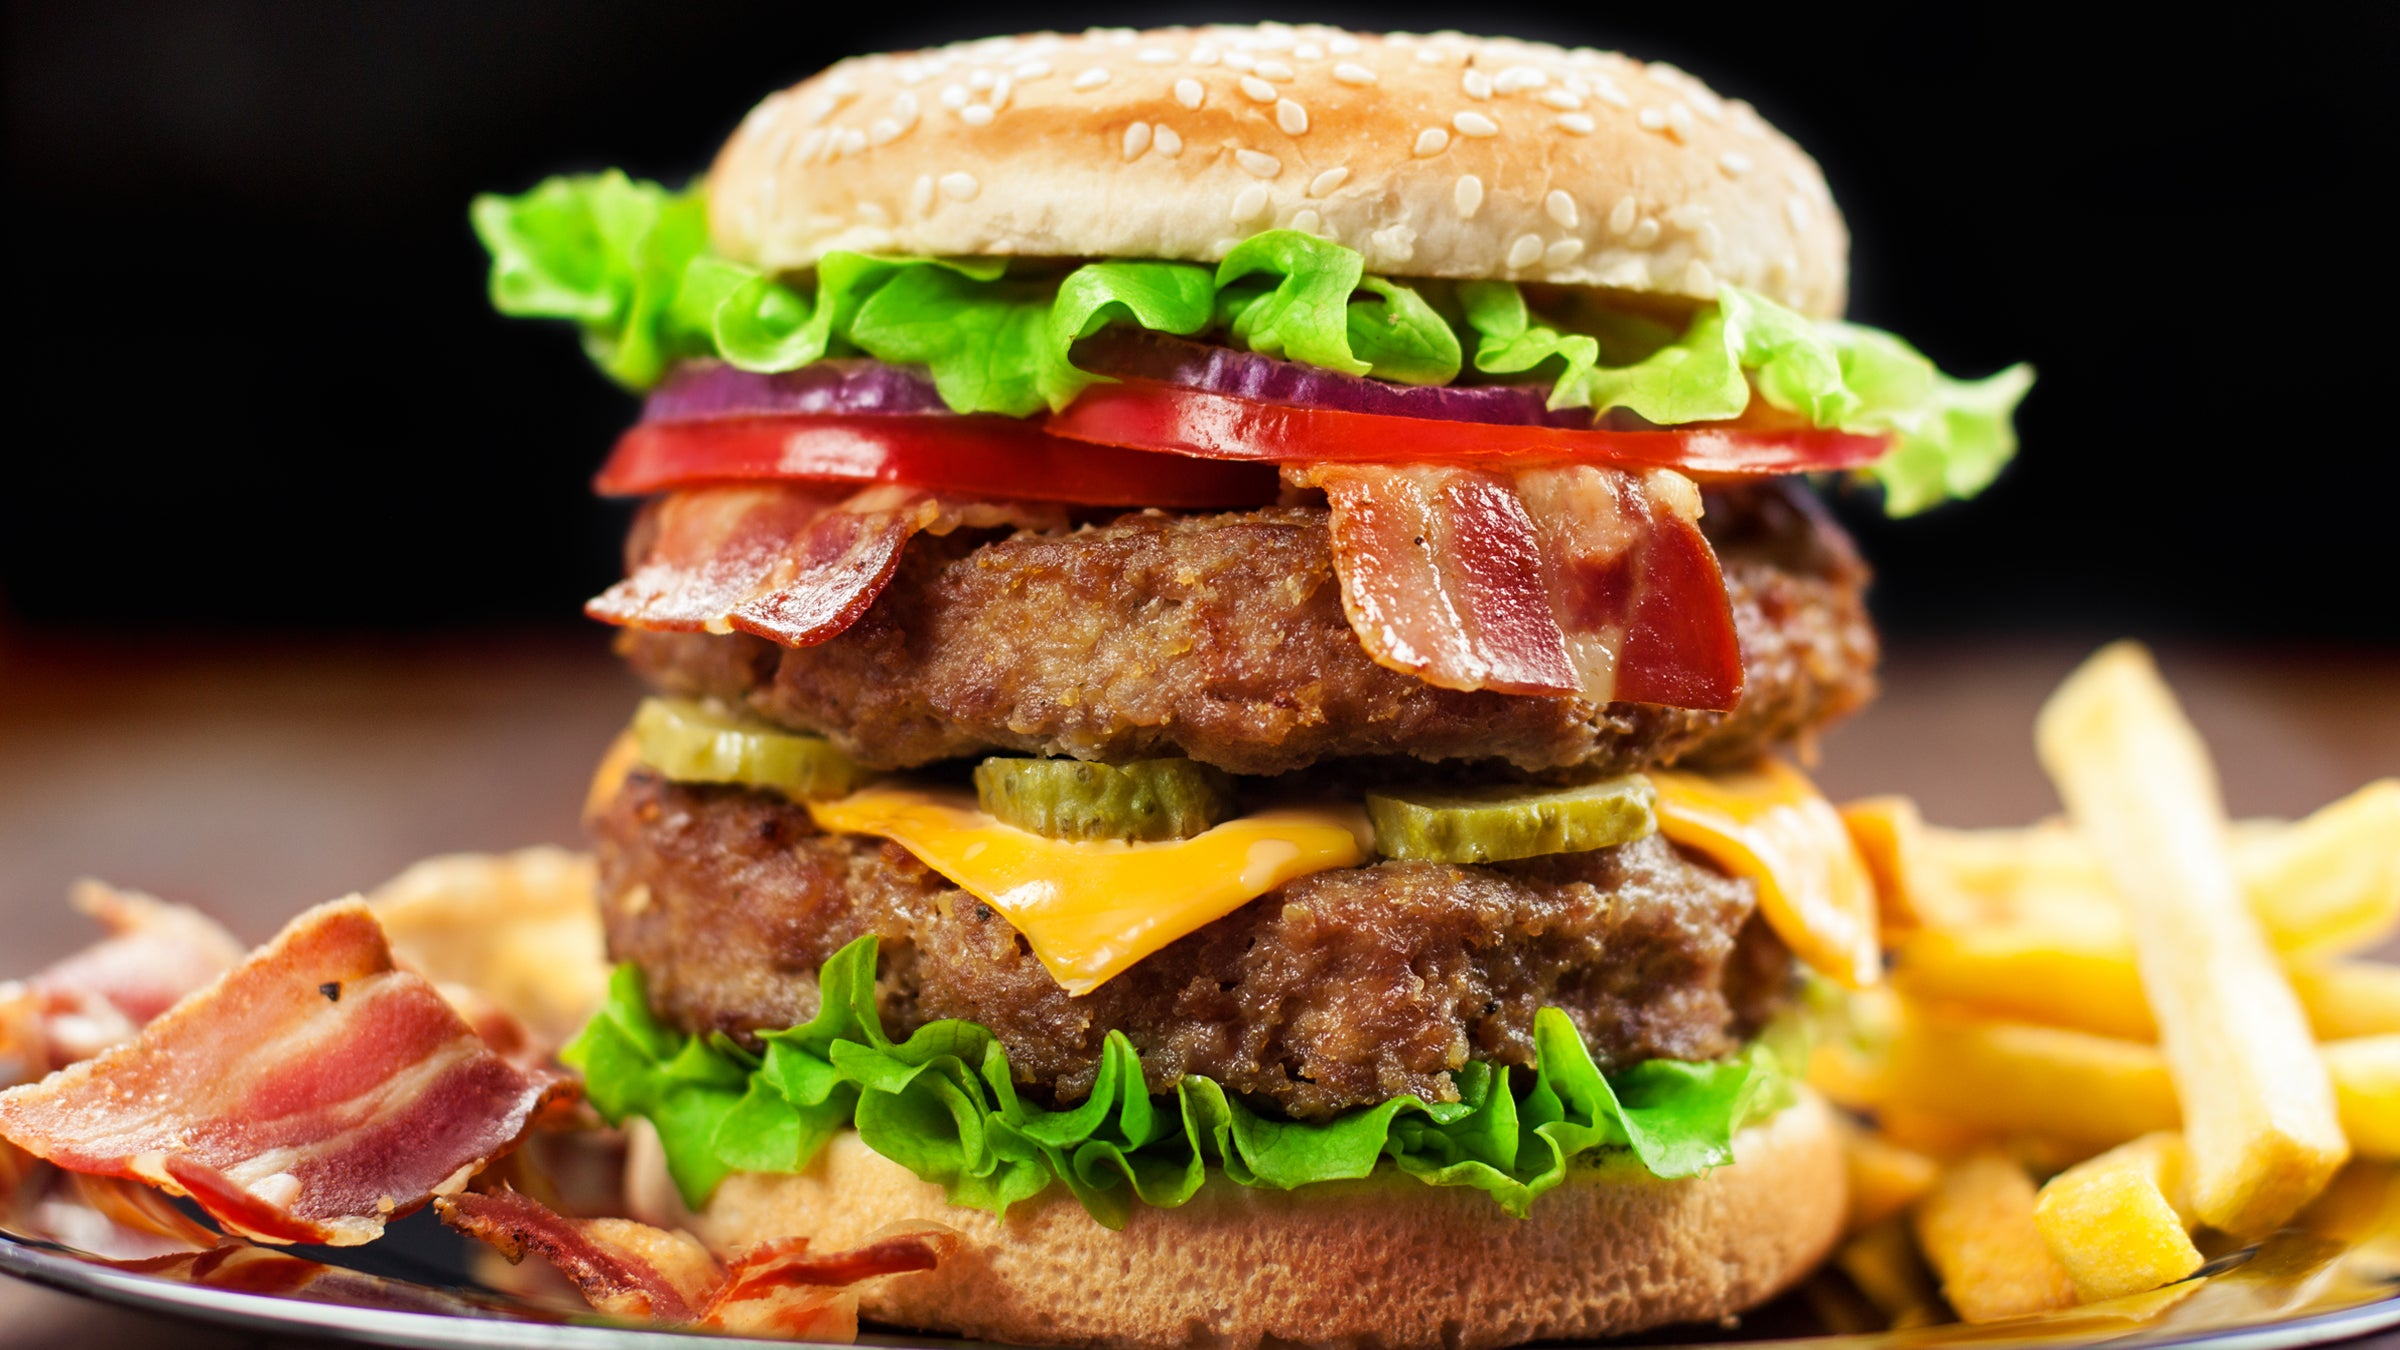 Lower Stress to Eat Less Junk Food